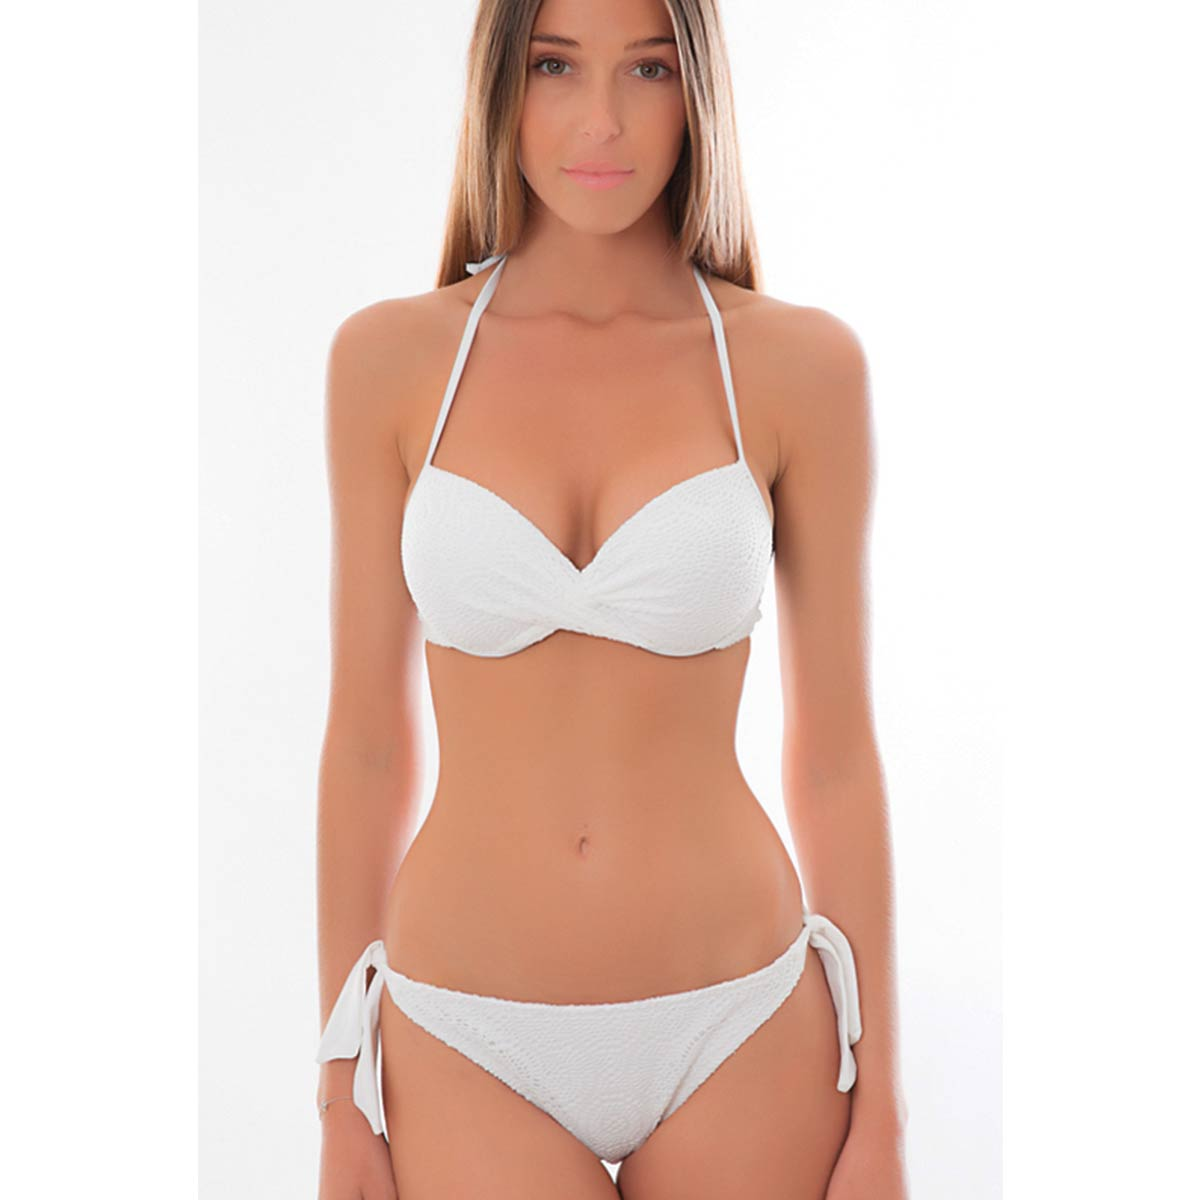 dc6d17df08 maillot de bain 2 pieces push up en dentelle blanc